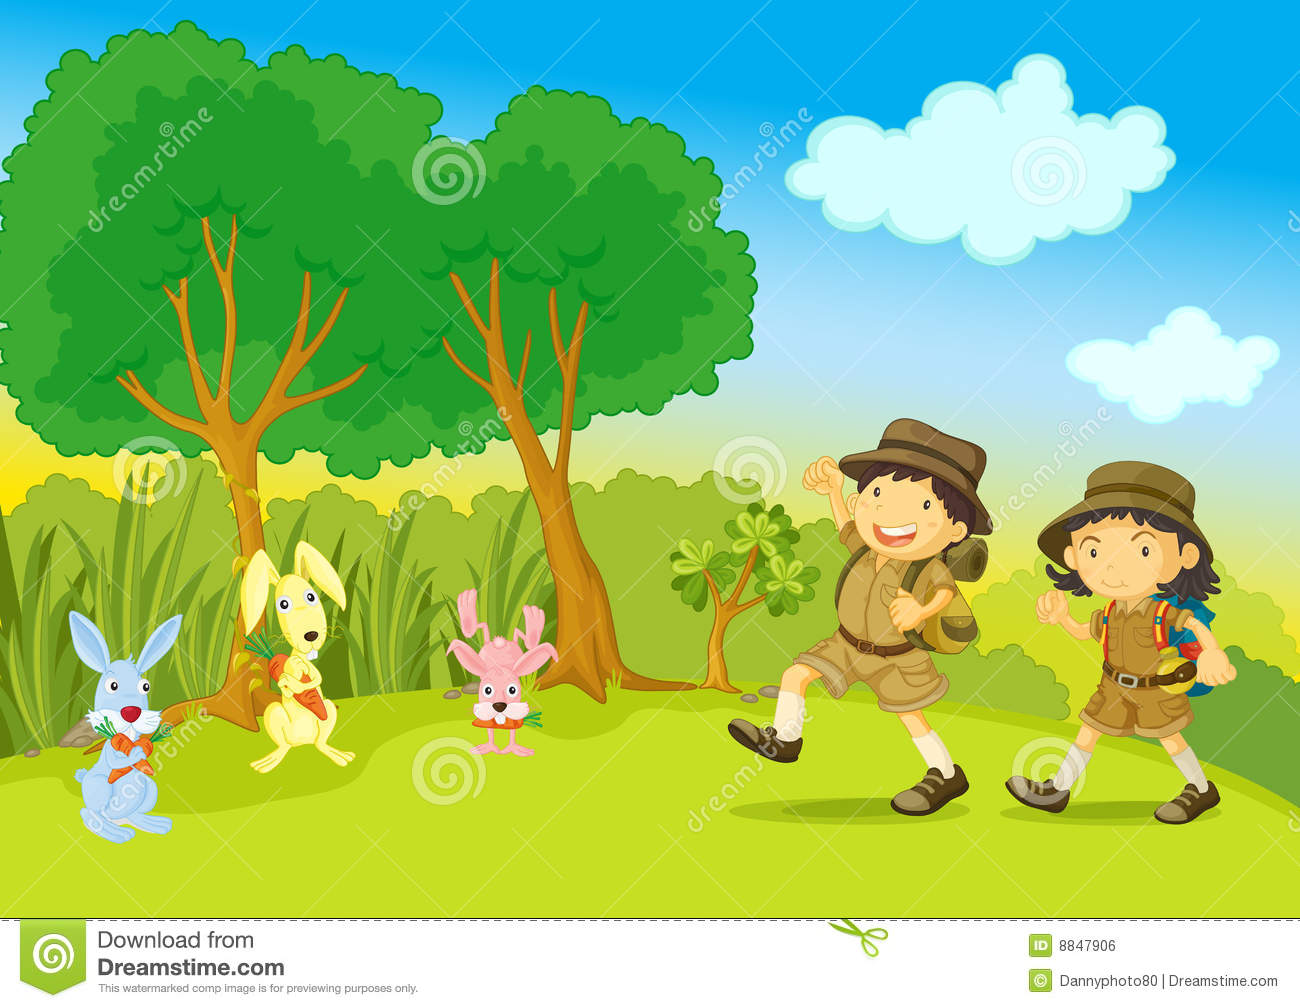 hight resolution of scout clipart nature walk boy and girl stock graphic royalty free download